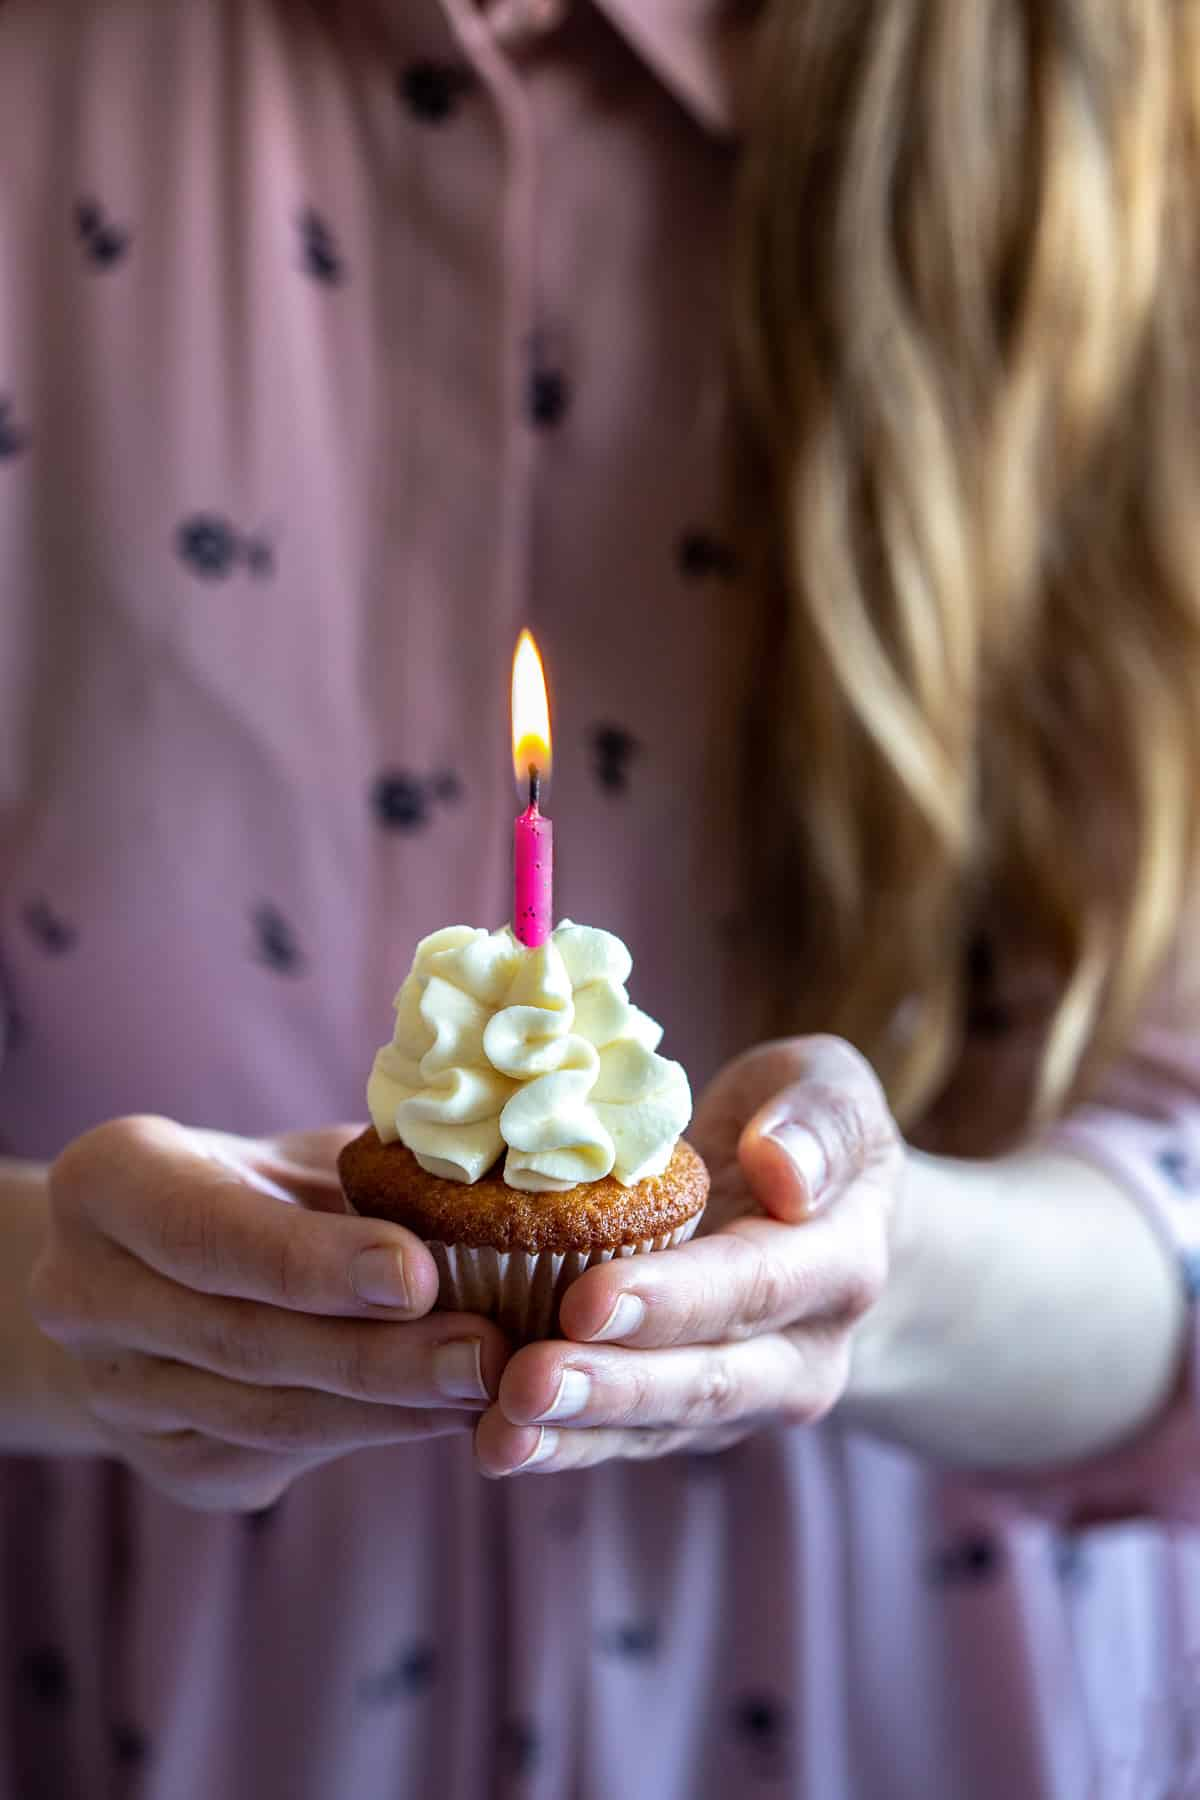 a woman holding a cupcake with a candle